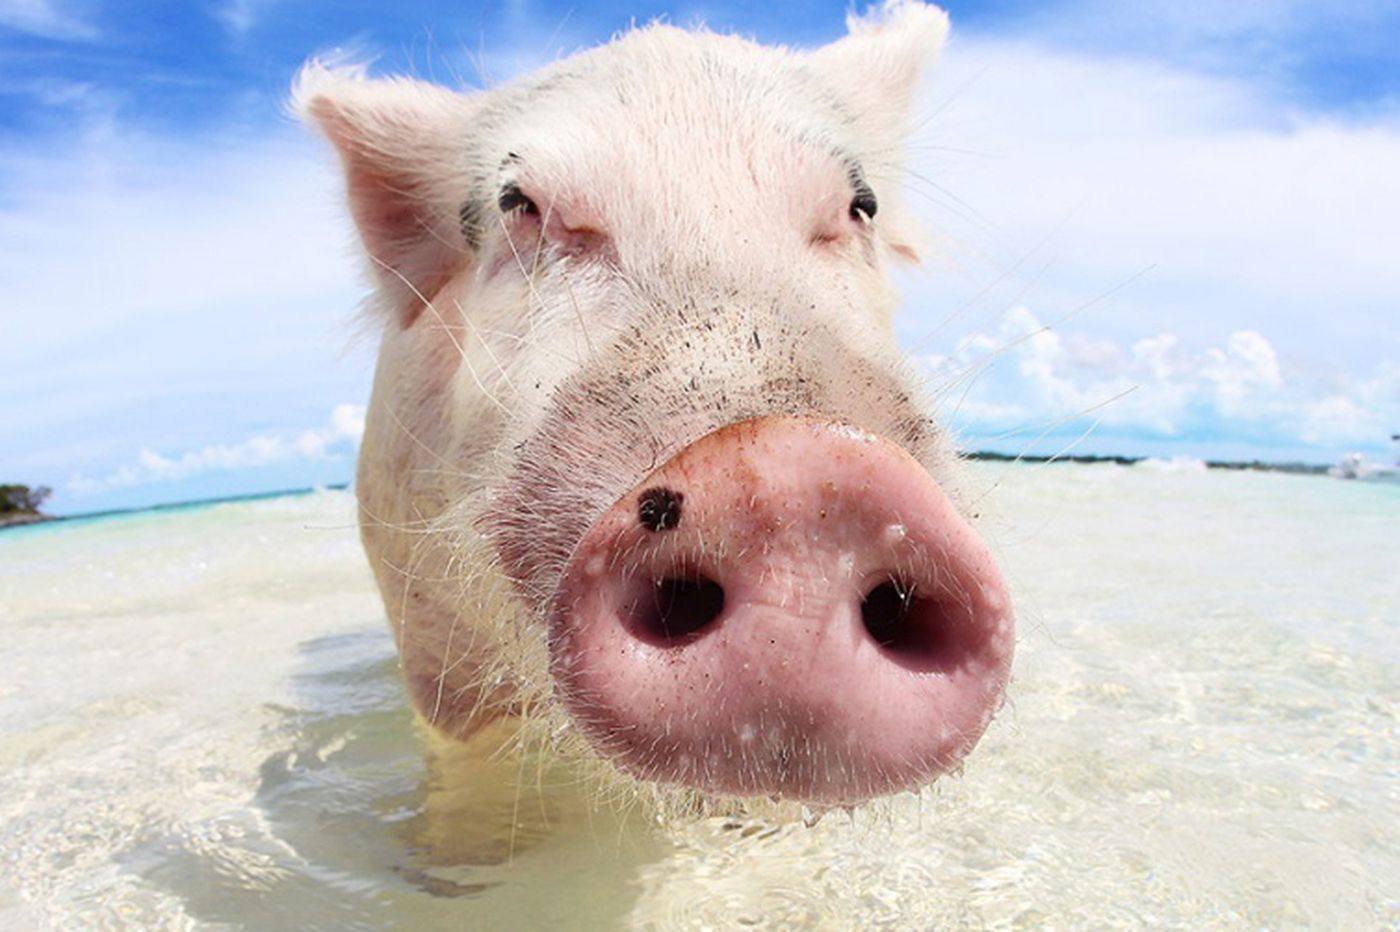 Bahamas' swimming pig attractions are out of control, animal rights advocates say